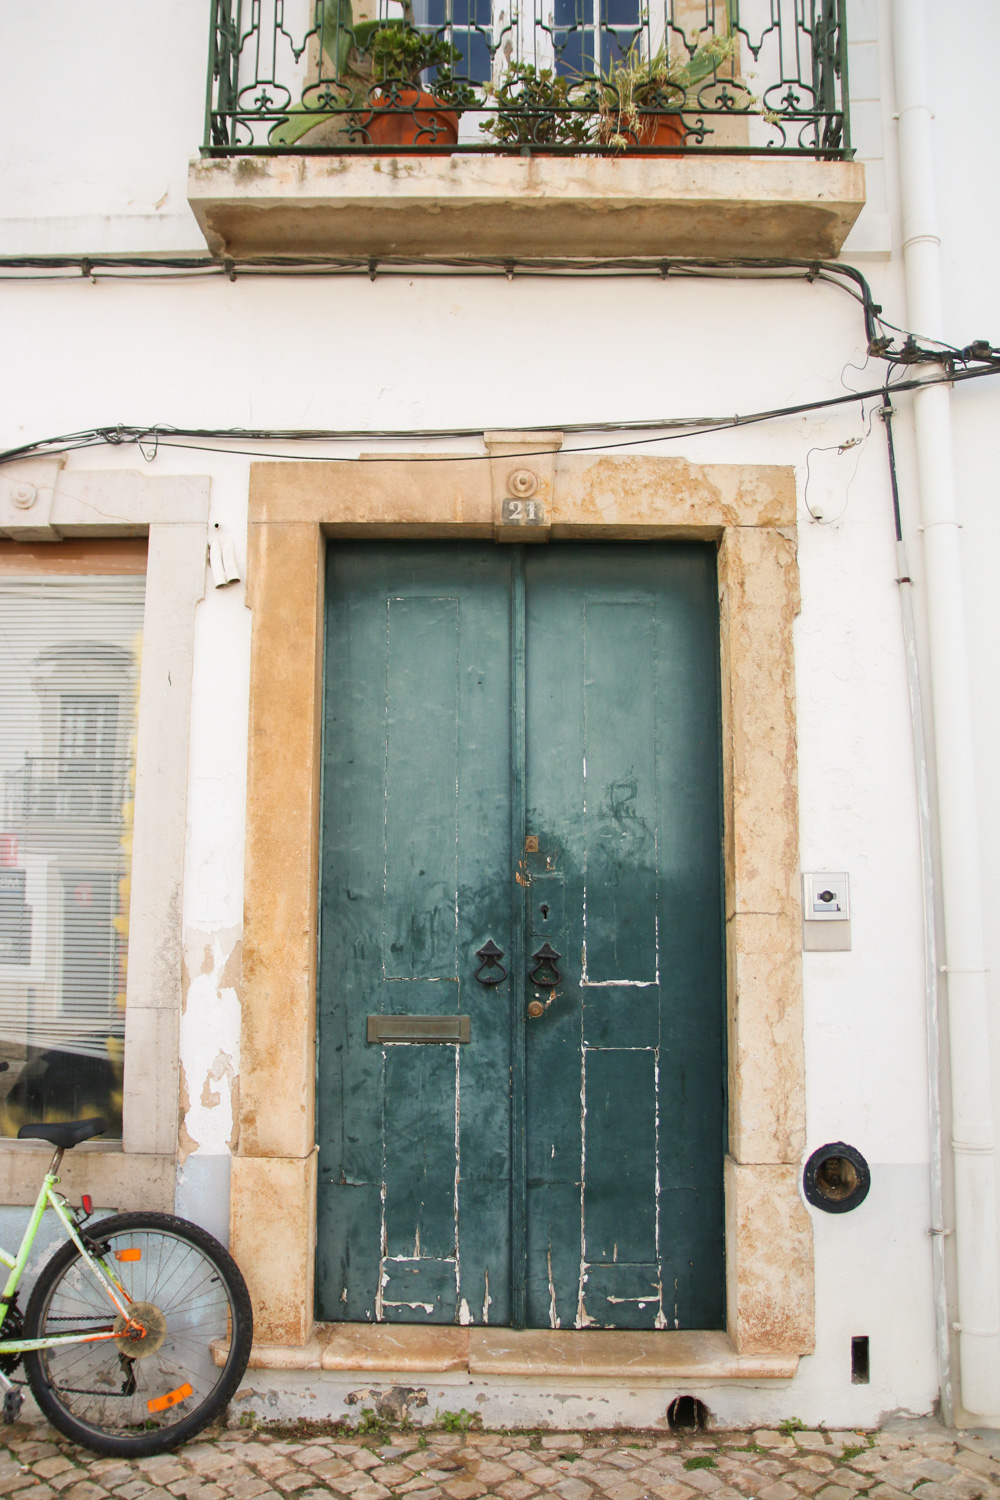 Old Doors in Tavira, The Algarve in Portugal